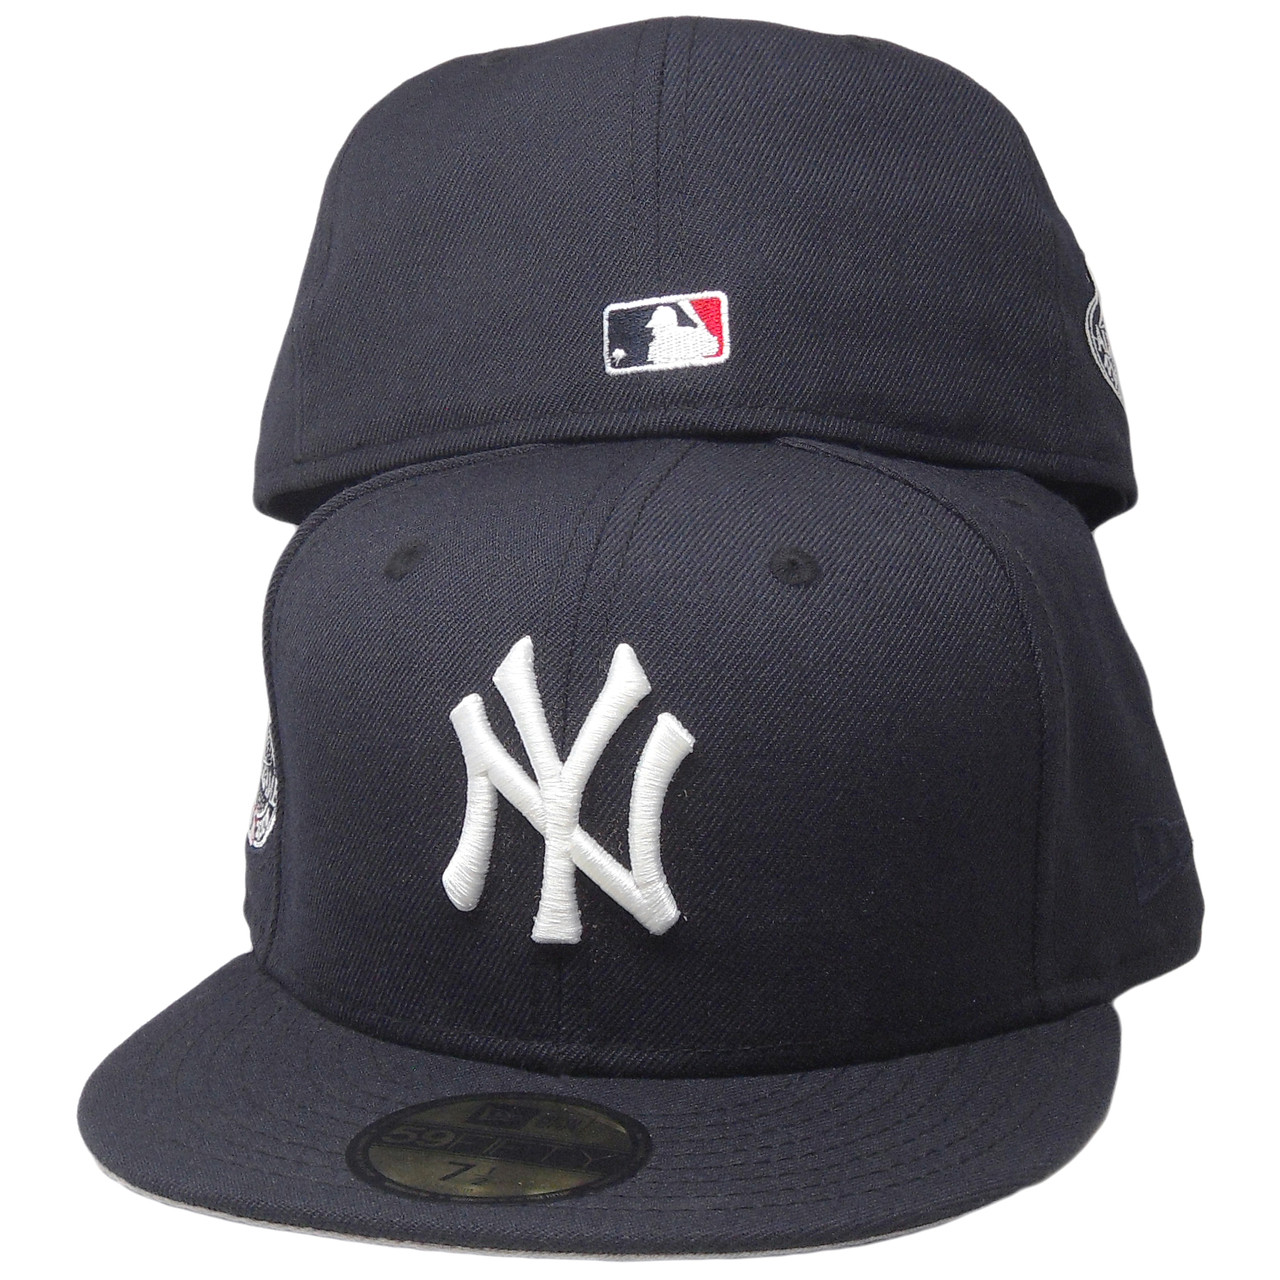 New York Yankees New Era All Star Game 2008 Fitted Hat - Navy Blue ... f28974dbf77